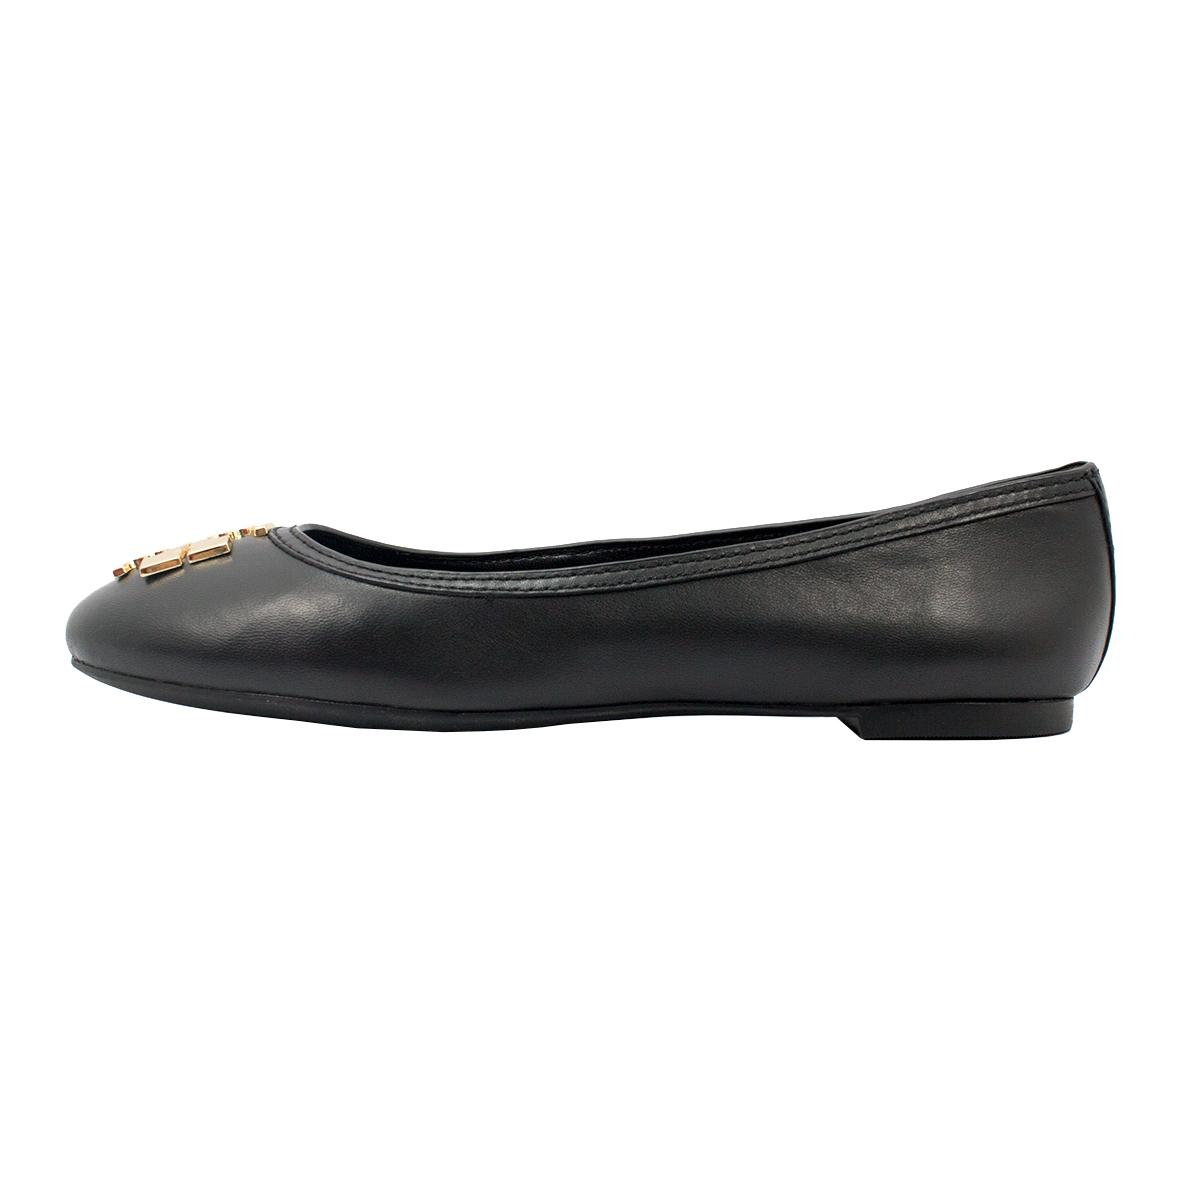 Tory Burch Black/Gold Laura Ballet - Mestico Black/Gold Flats